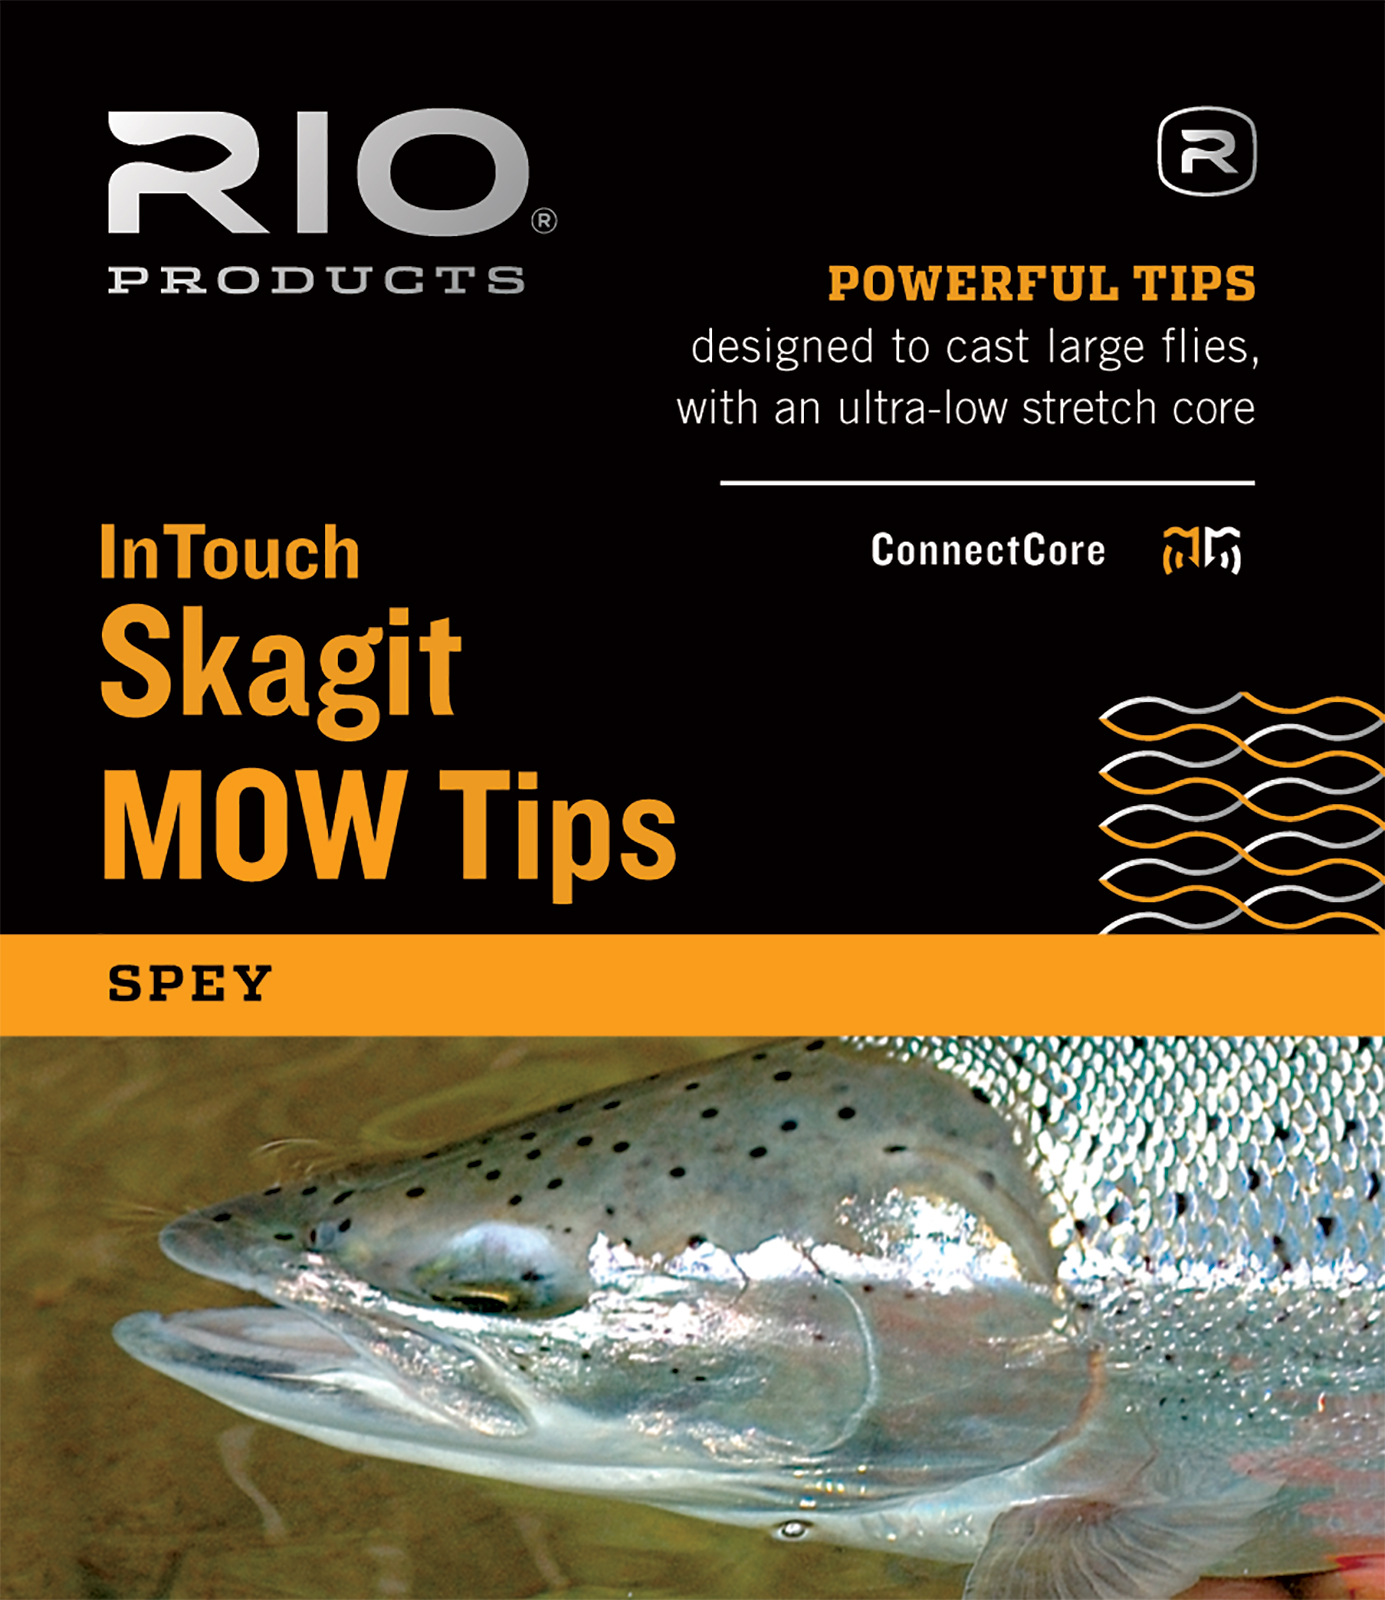 RIO InTouch Skagit MOW Tips Fly Fishing Line All Sizes by